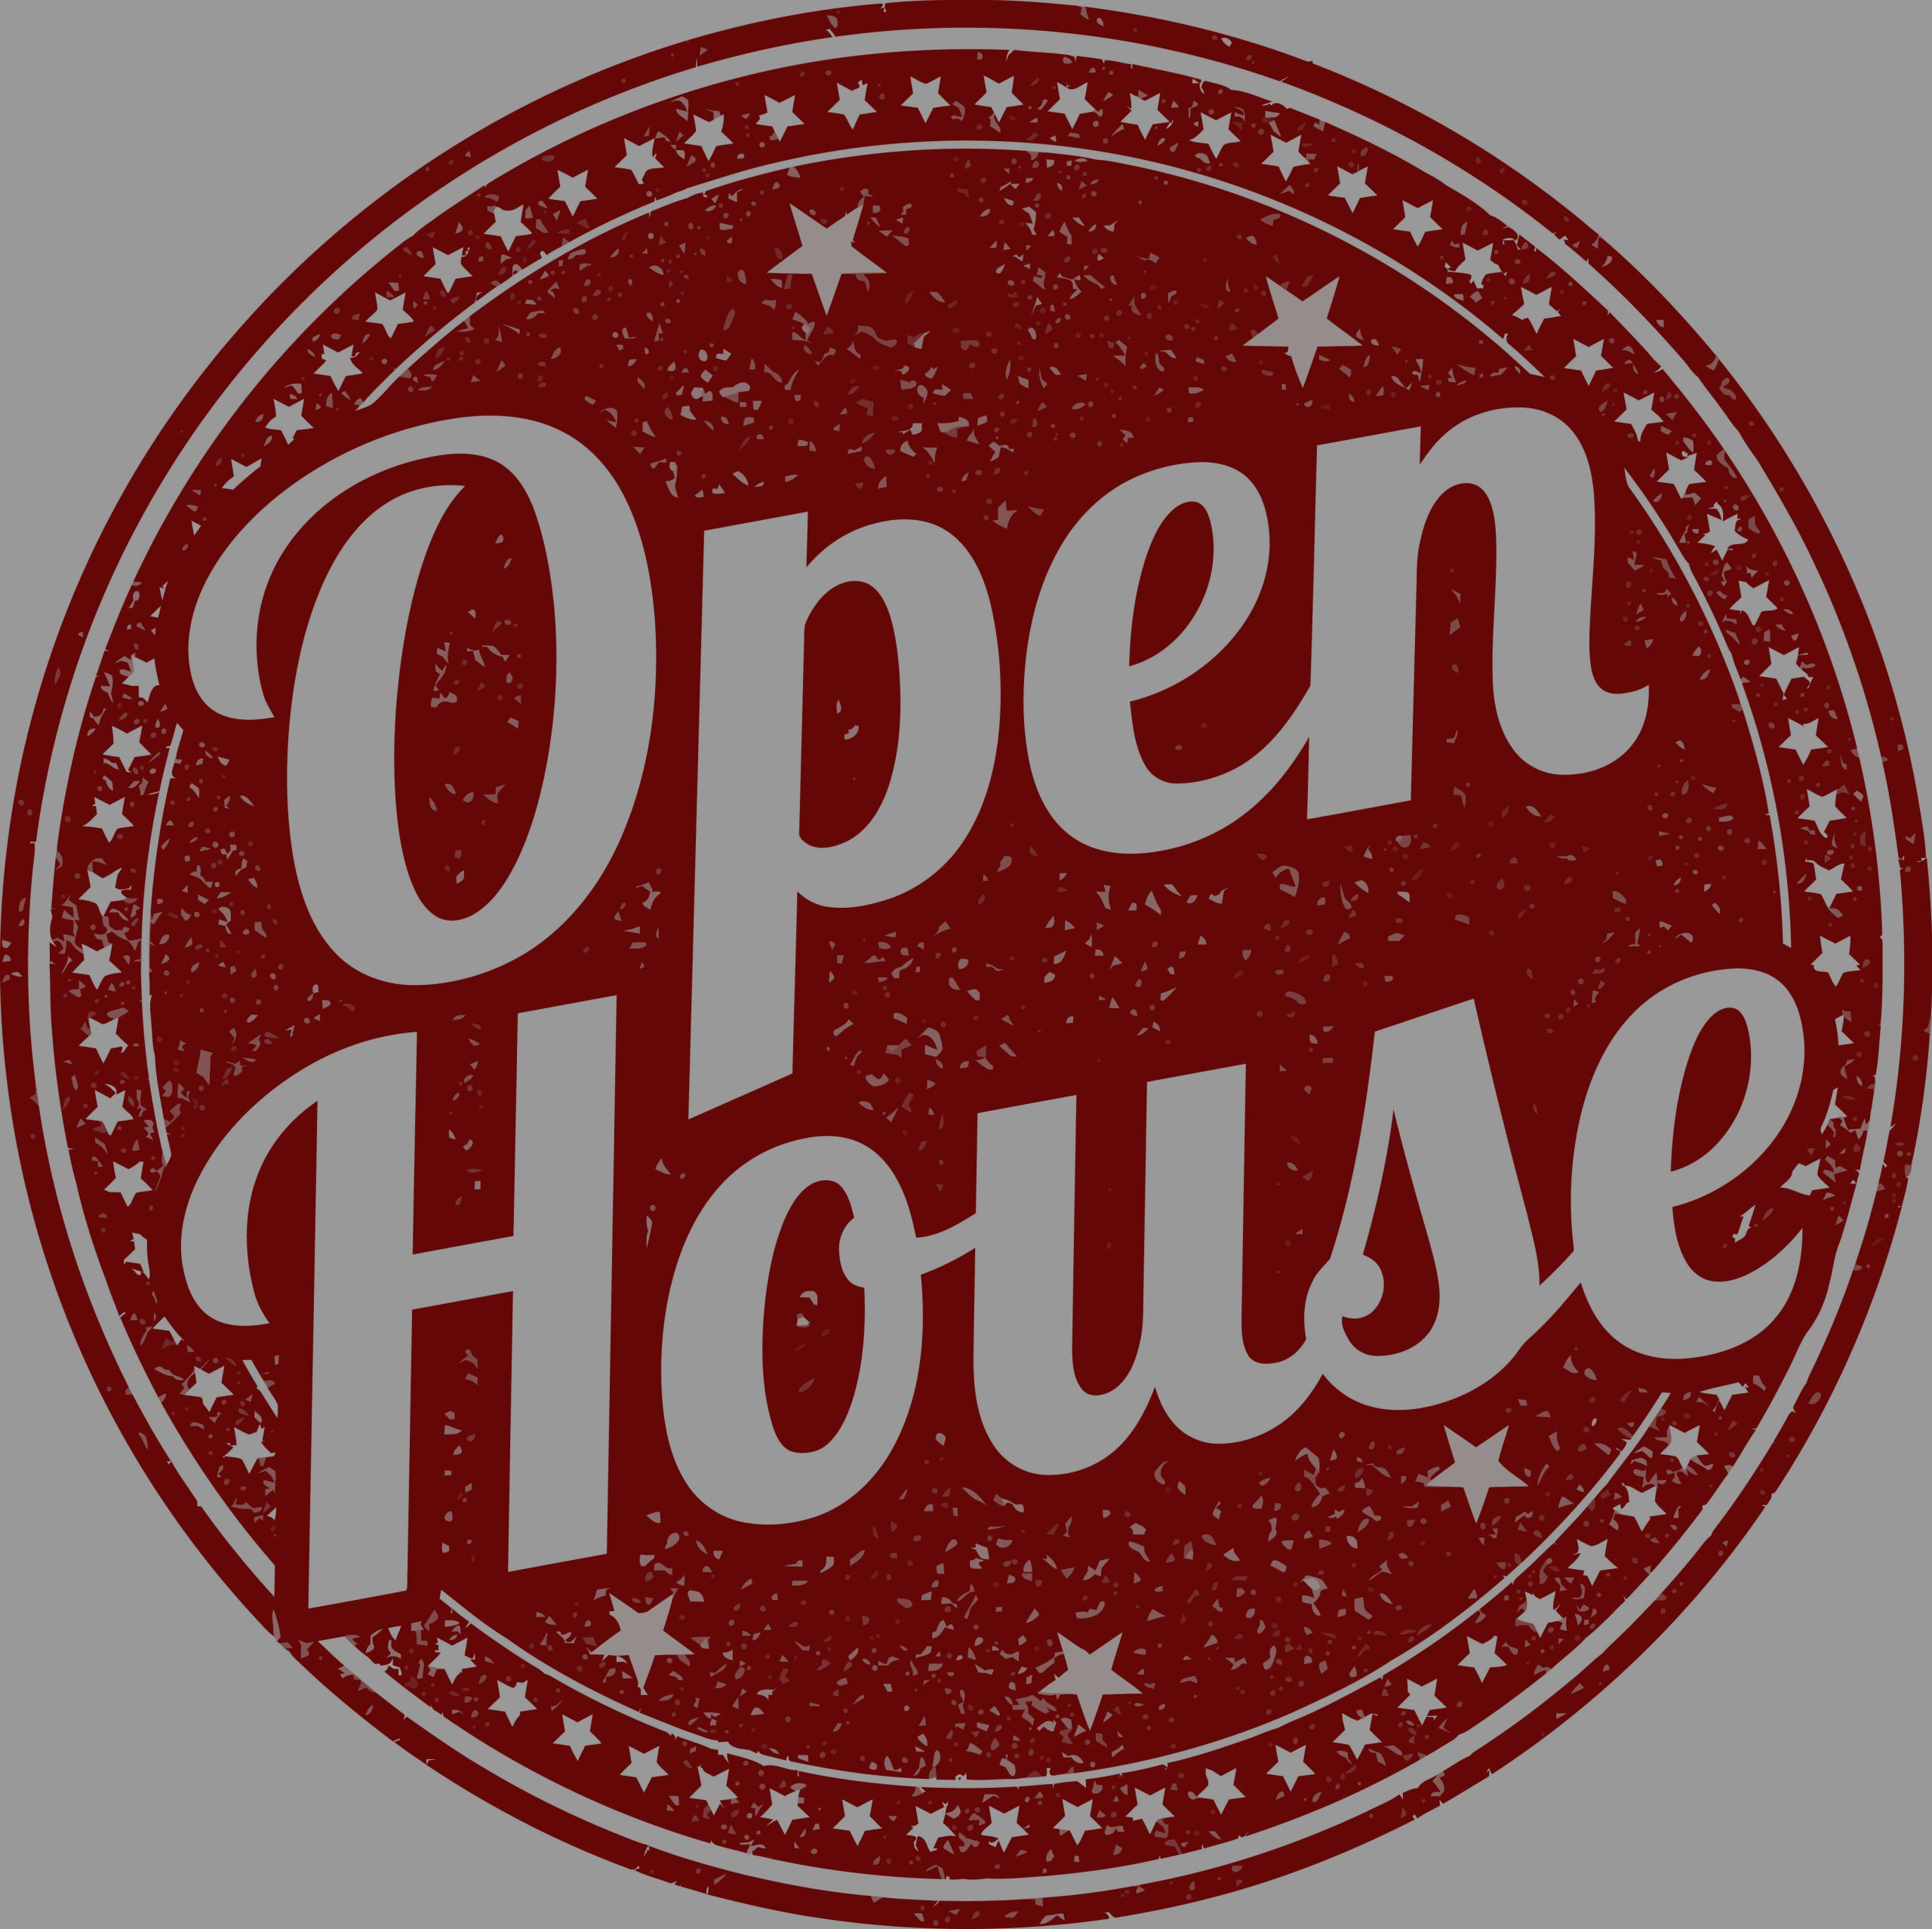 Episode 1: Three Ways to Get the Most Out of Your Open House